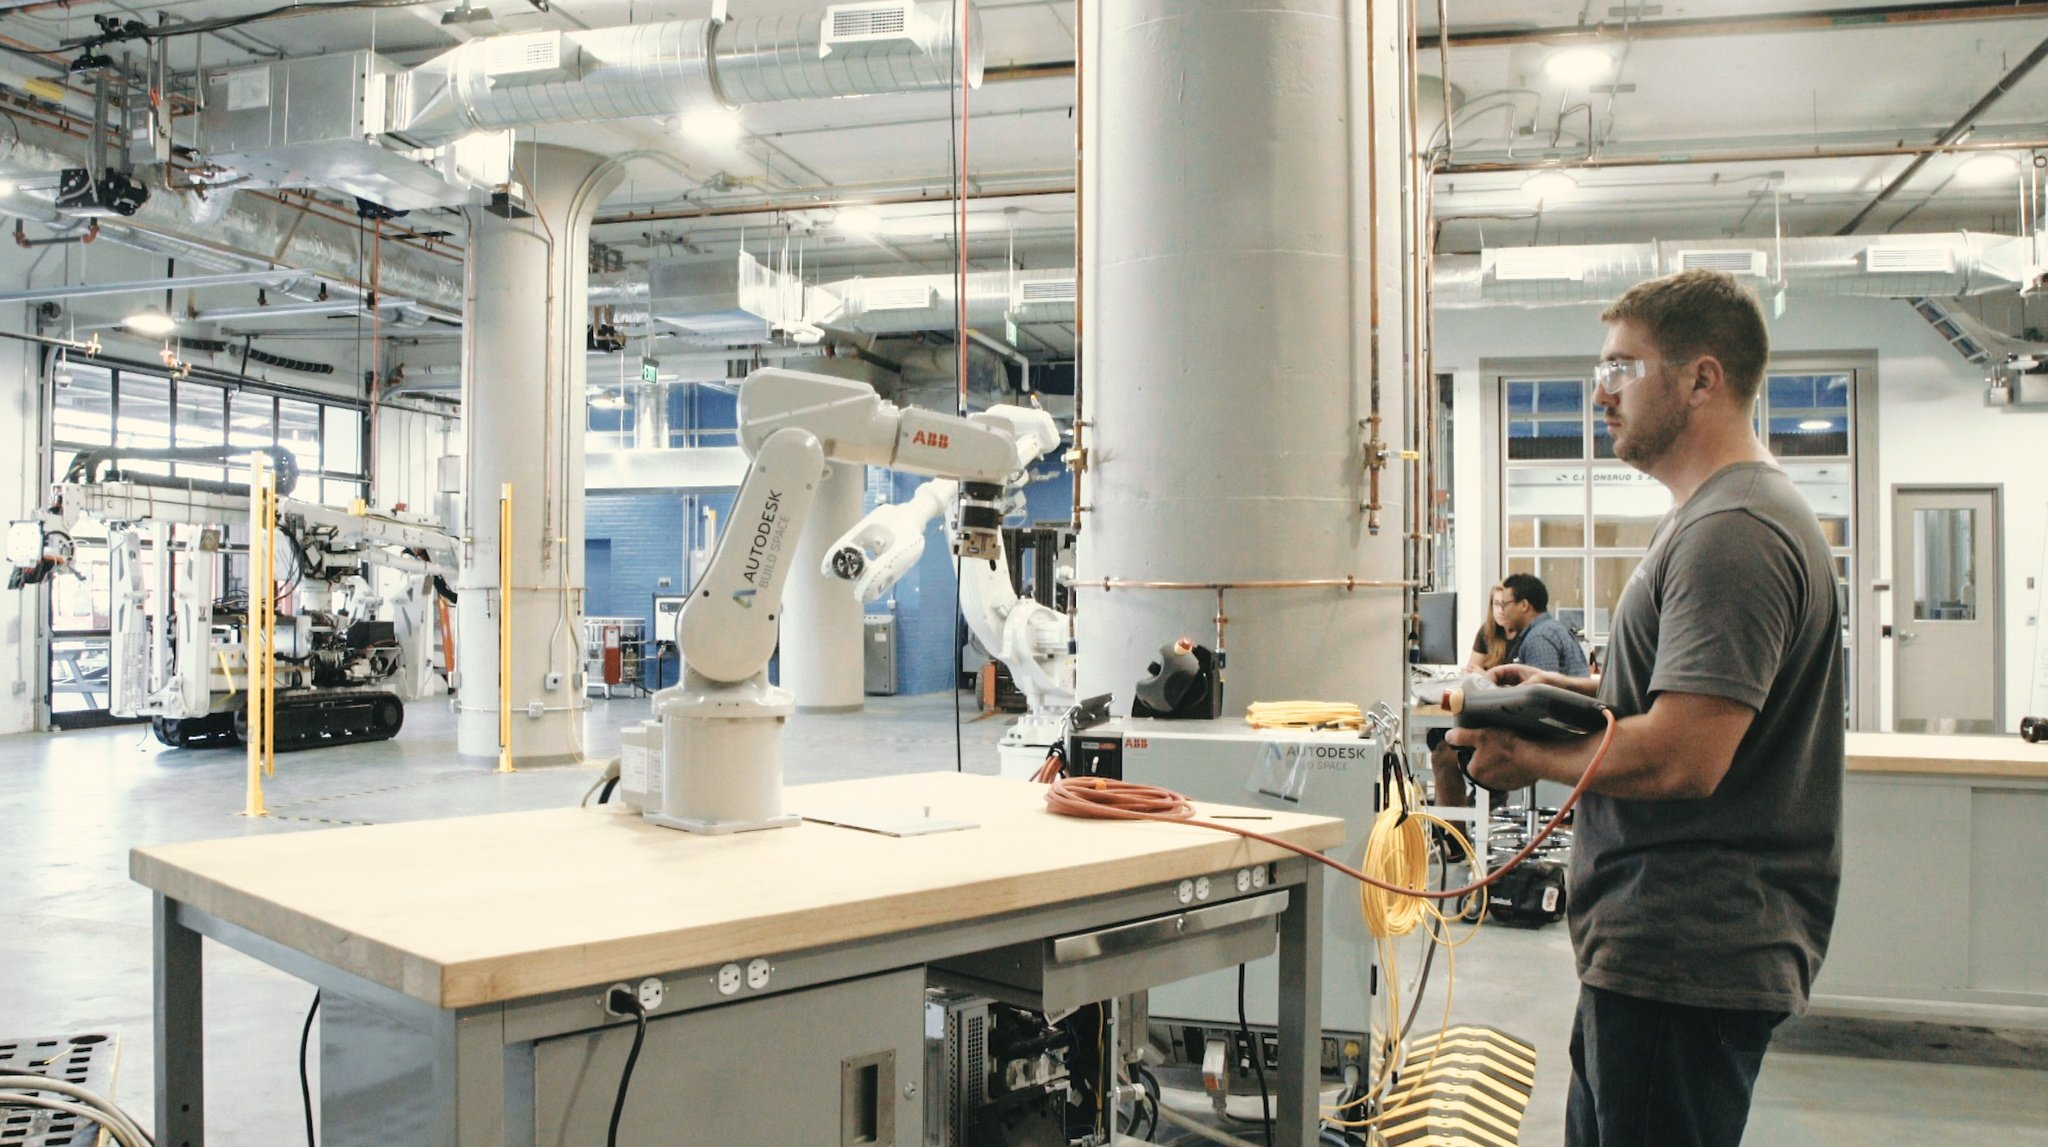 Autodesk opens BUILD, a high-tech workshop for the construction industry